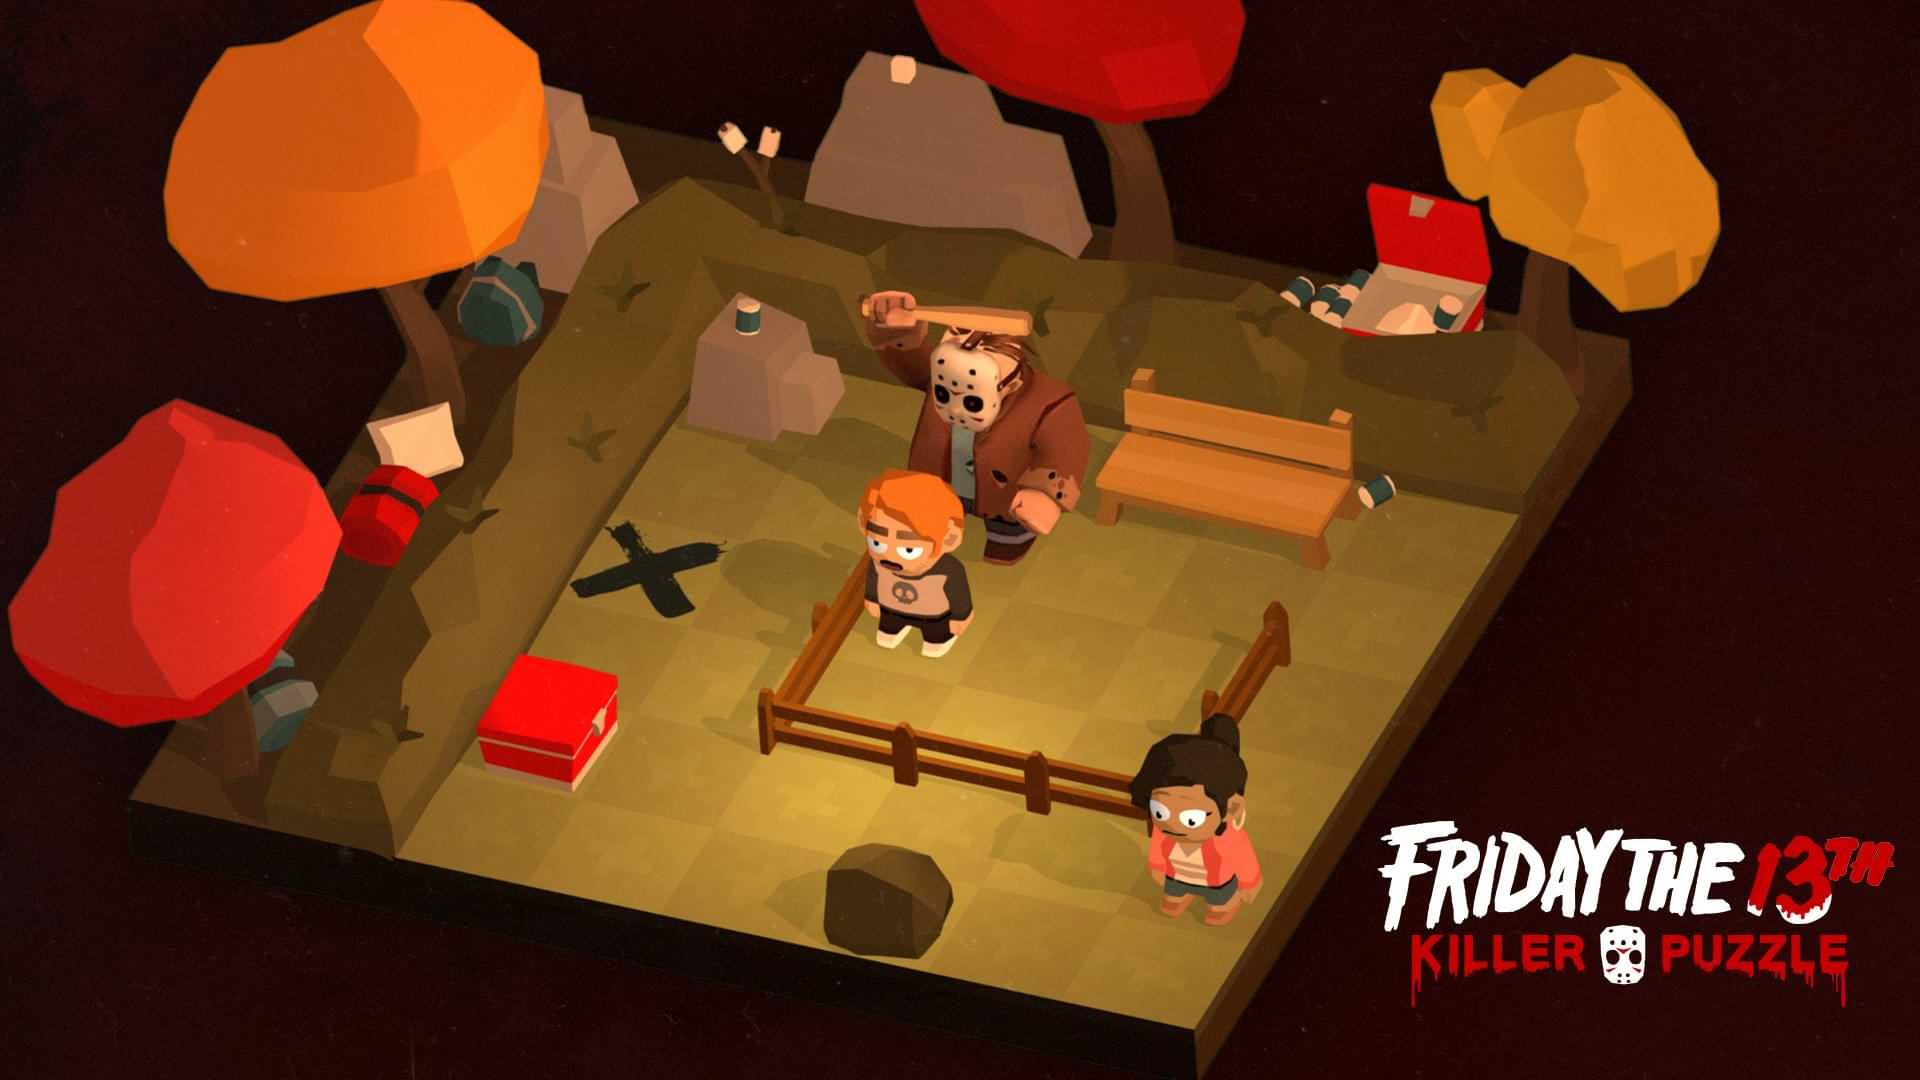 Friday the 13th Killer Puzzle - Fall